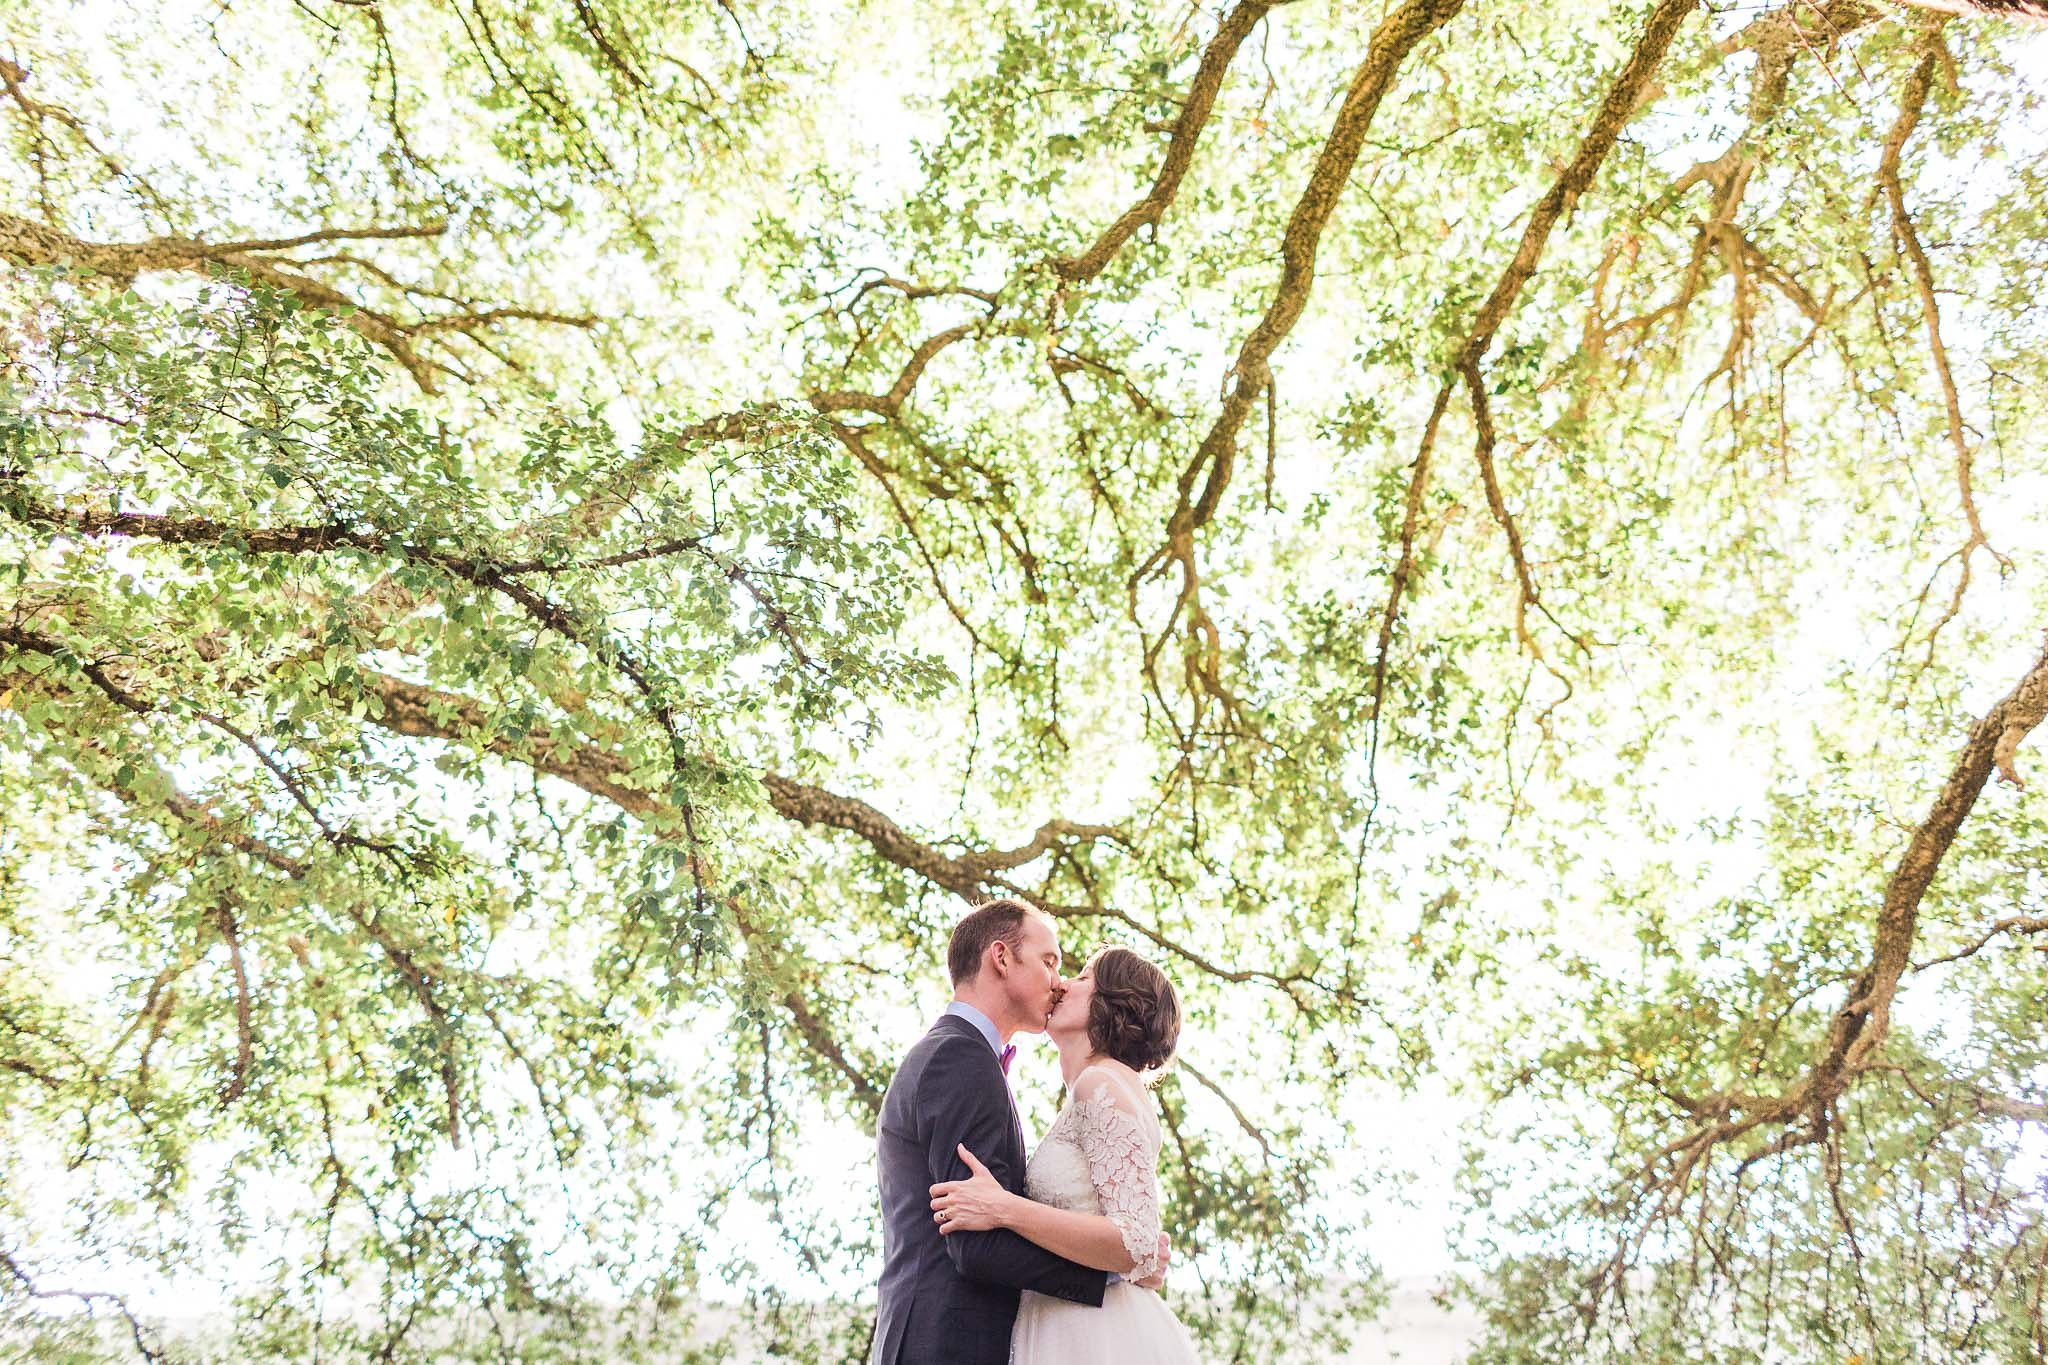 The newlywed couple sharing a kiss in front of the cork trees at the National Aboretum